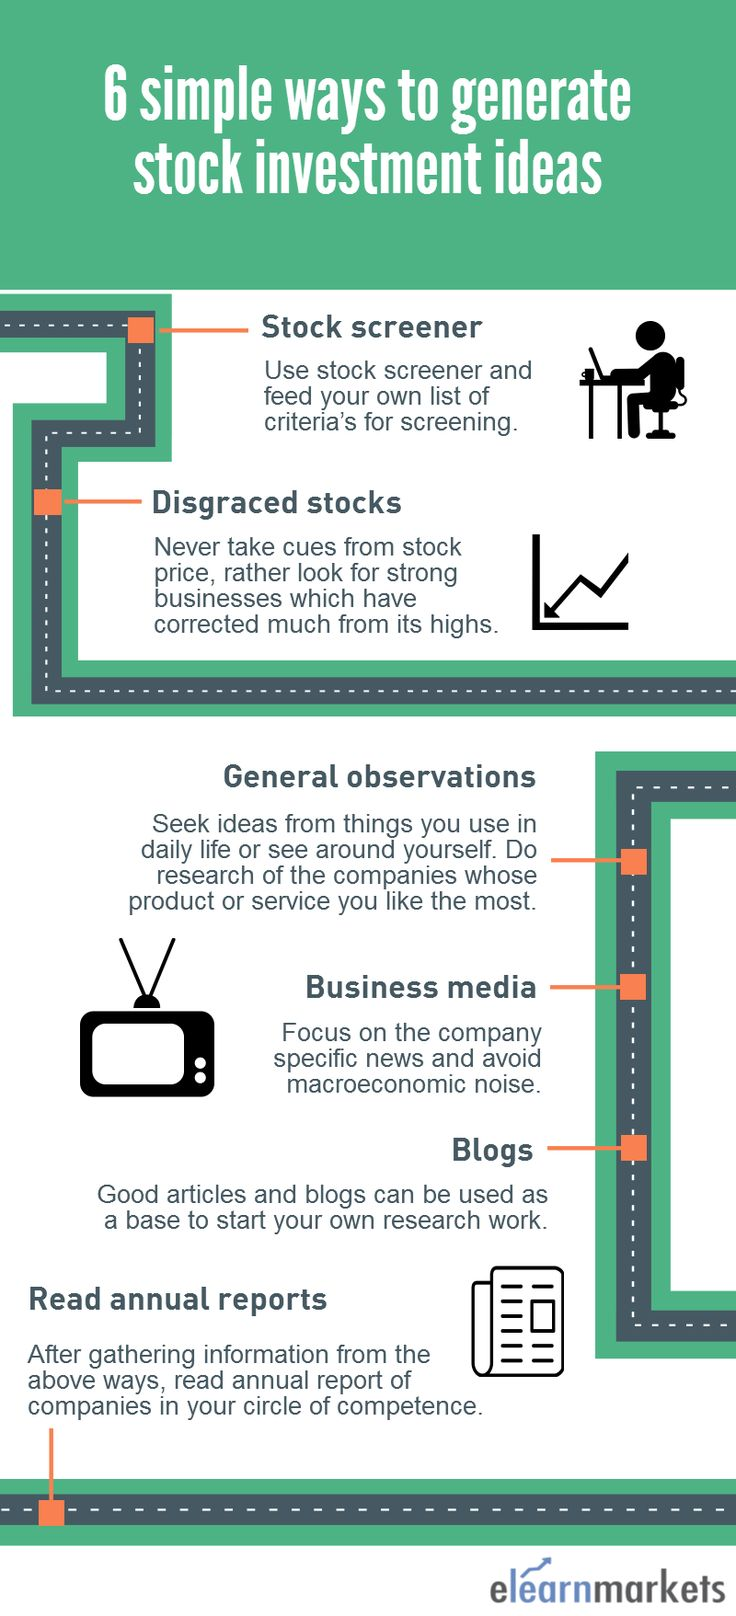 6 simple ways to generate stock investment ideas. Read the complete article below- http://blog.elearnmarkets.com/simple-ways-to-generate-stock-investment-ideas/